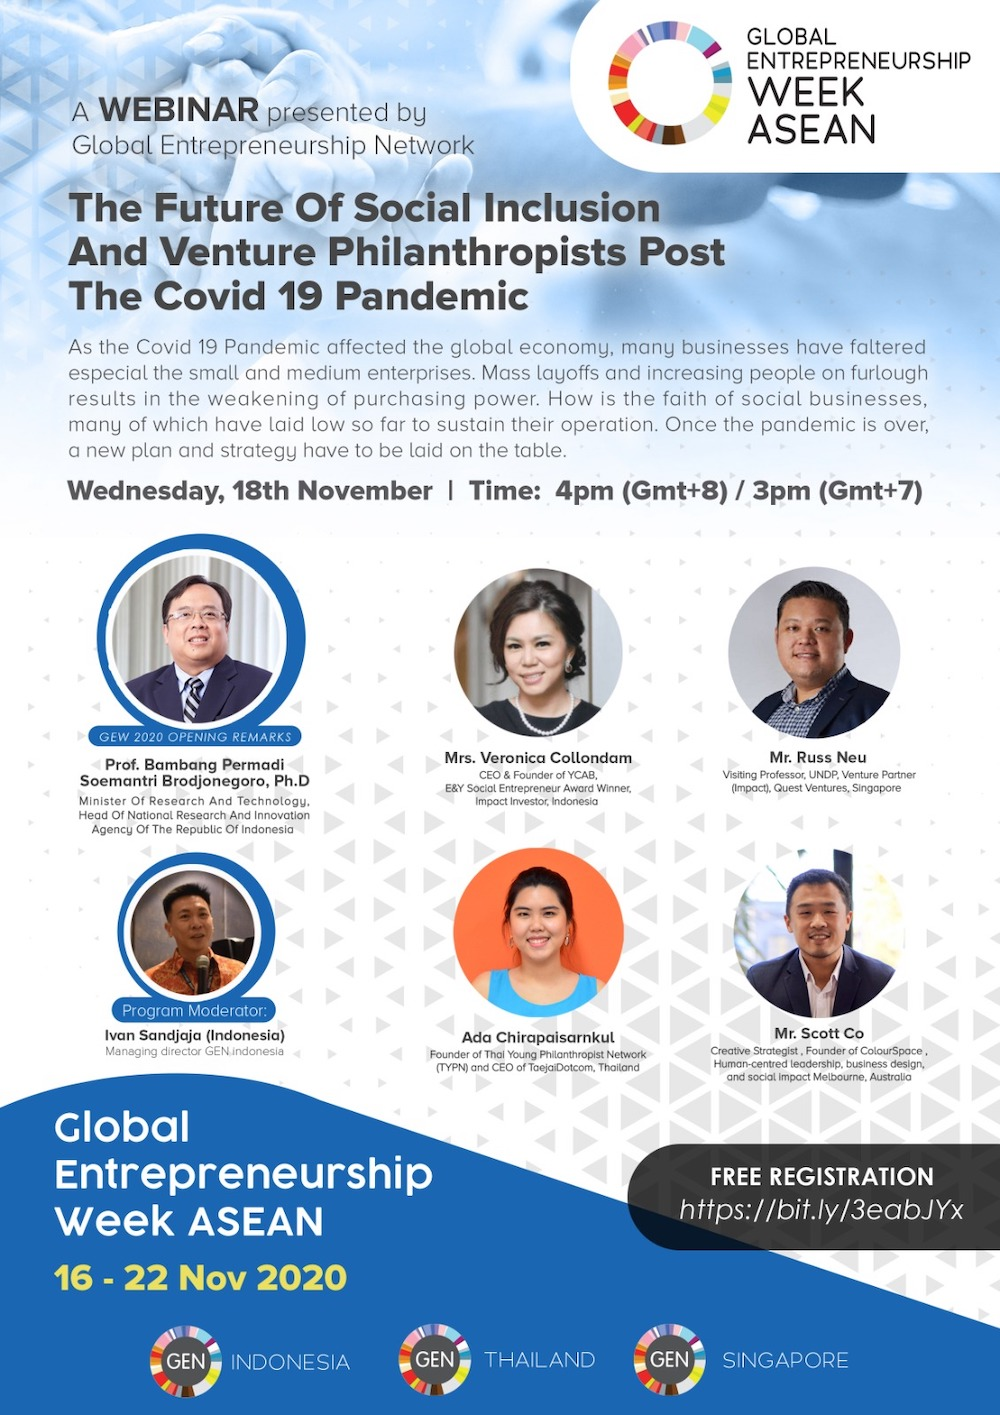 The future of social inclusion and venture philanthropists post the COVID-19 pandemic